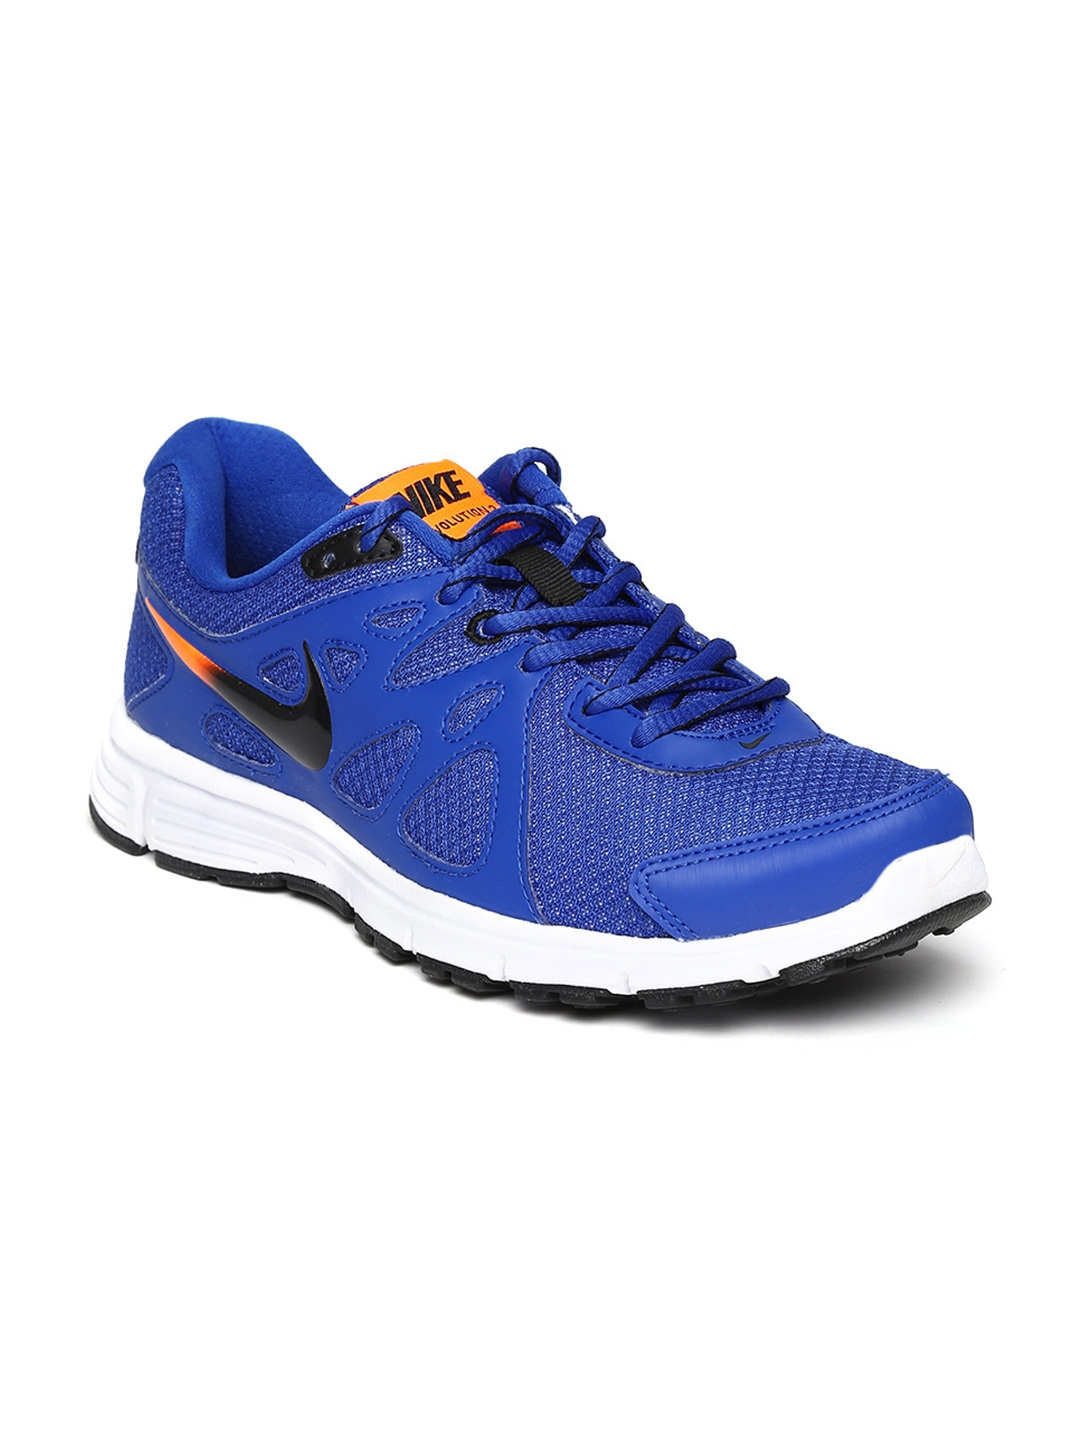 superior quality 8b5ef 304c7 Buy Nike Men Blue Revolution 2 MSL Running Shoes - Sports Shoes for Men  683954  Myntra